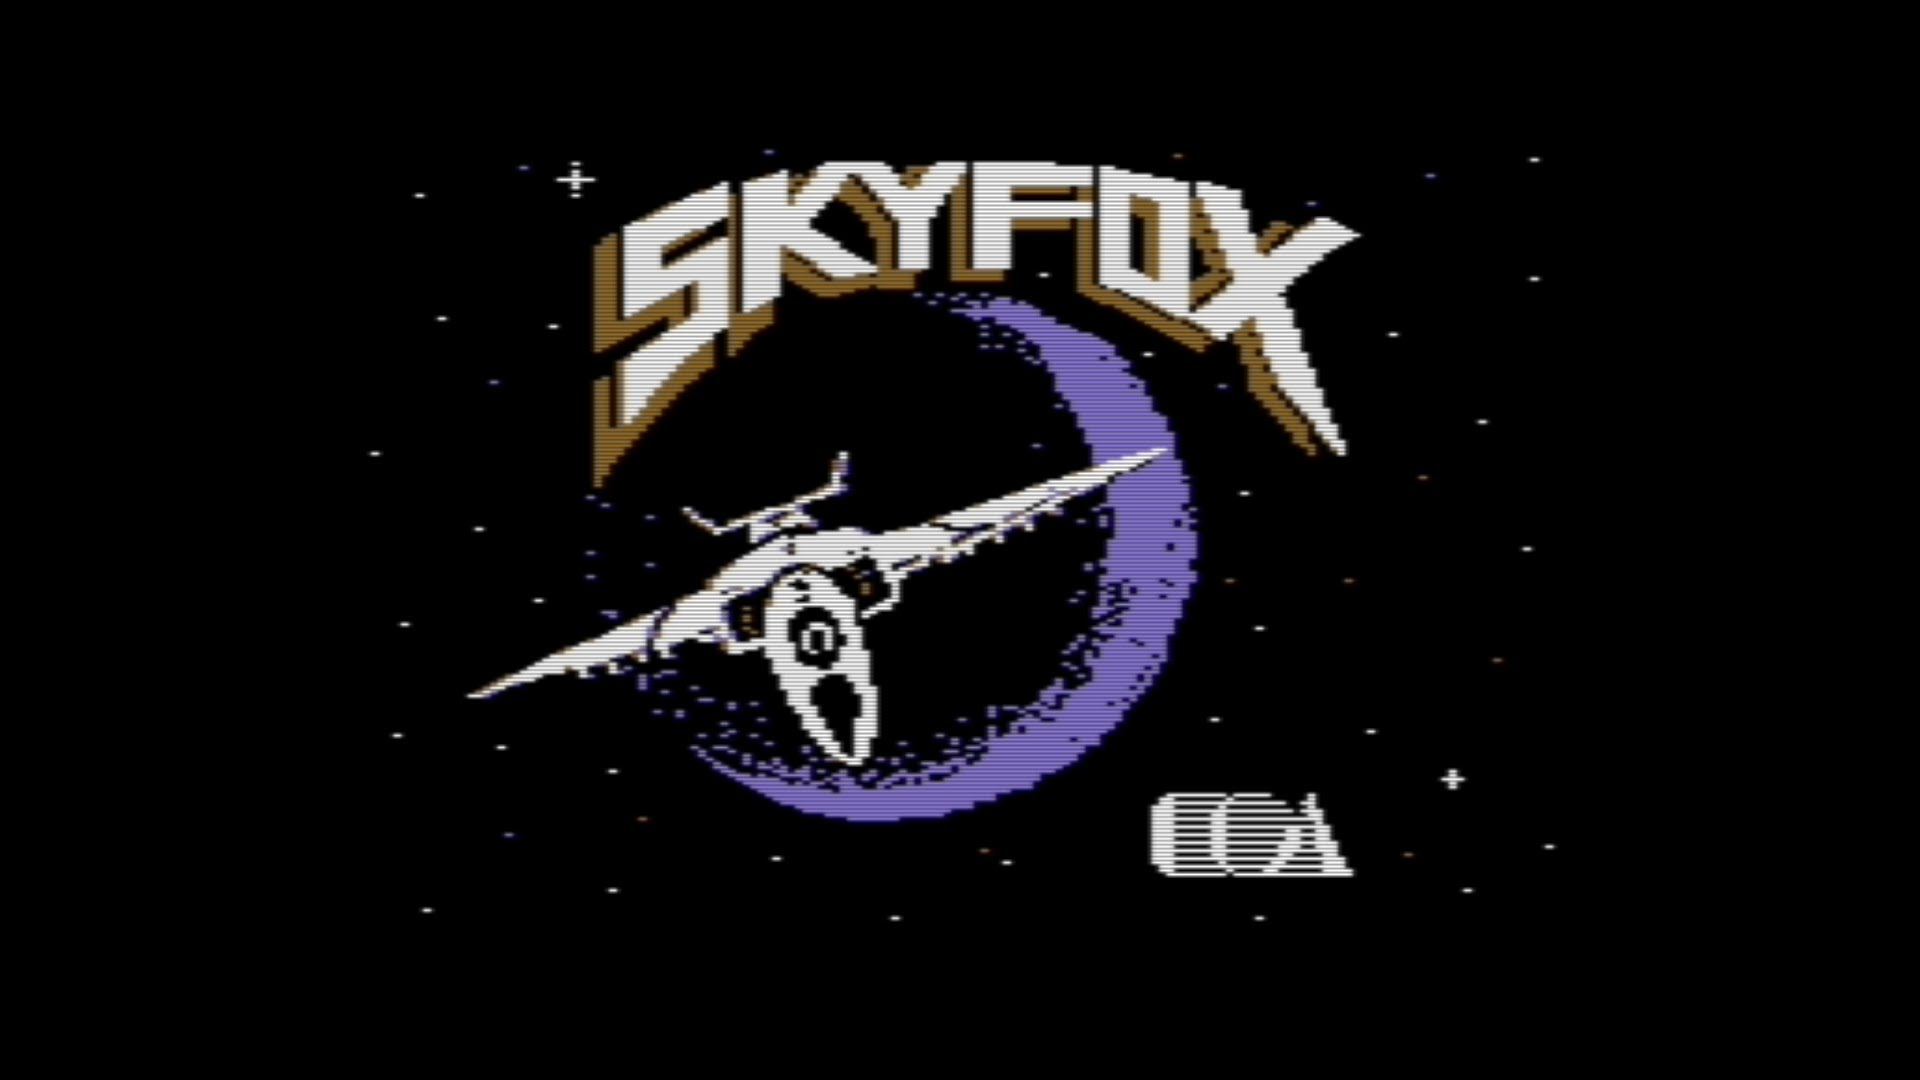 This is SKYFOX